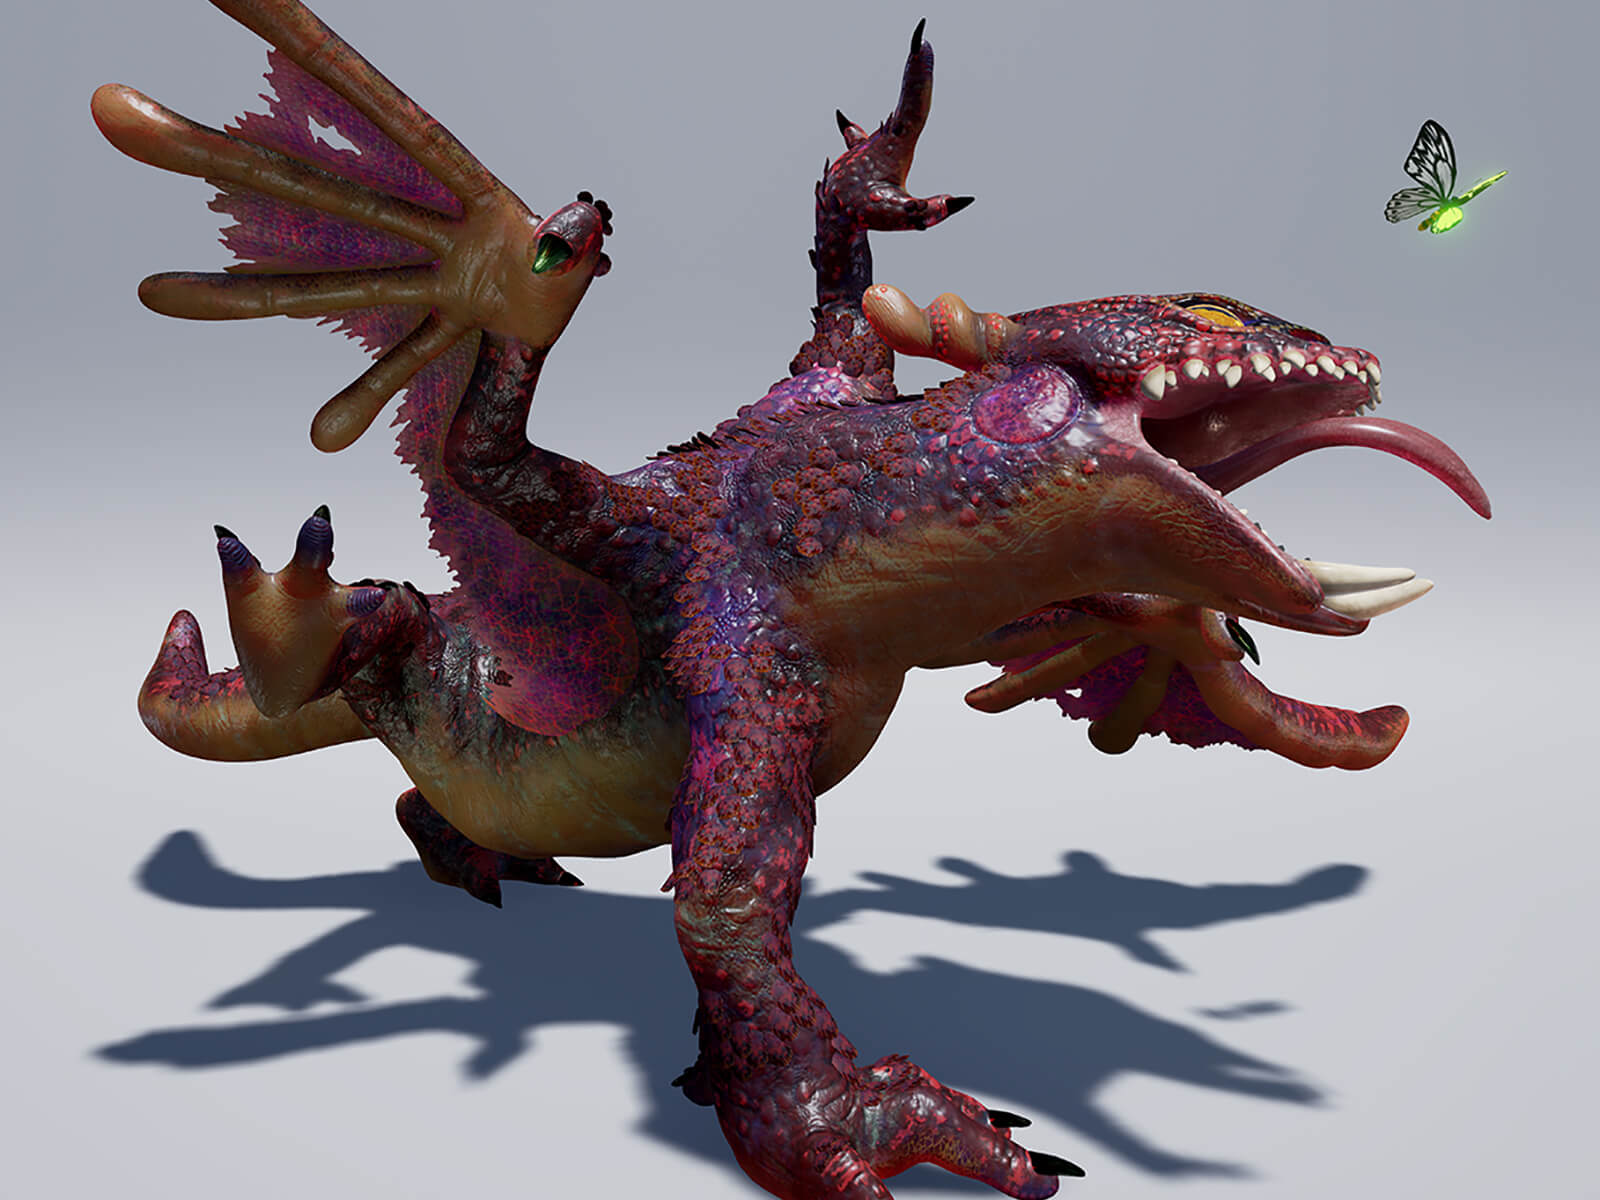 computer-generated 3D model of a winged lizard about to catch a butterfly with its tongue